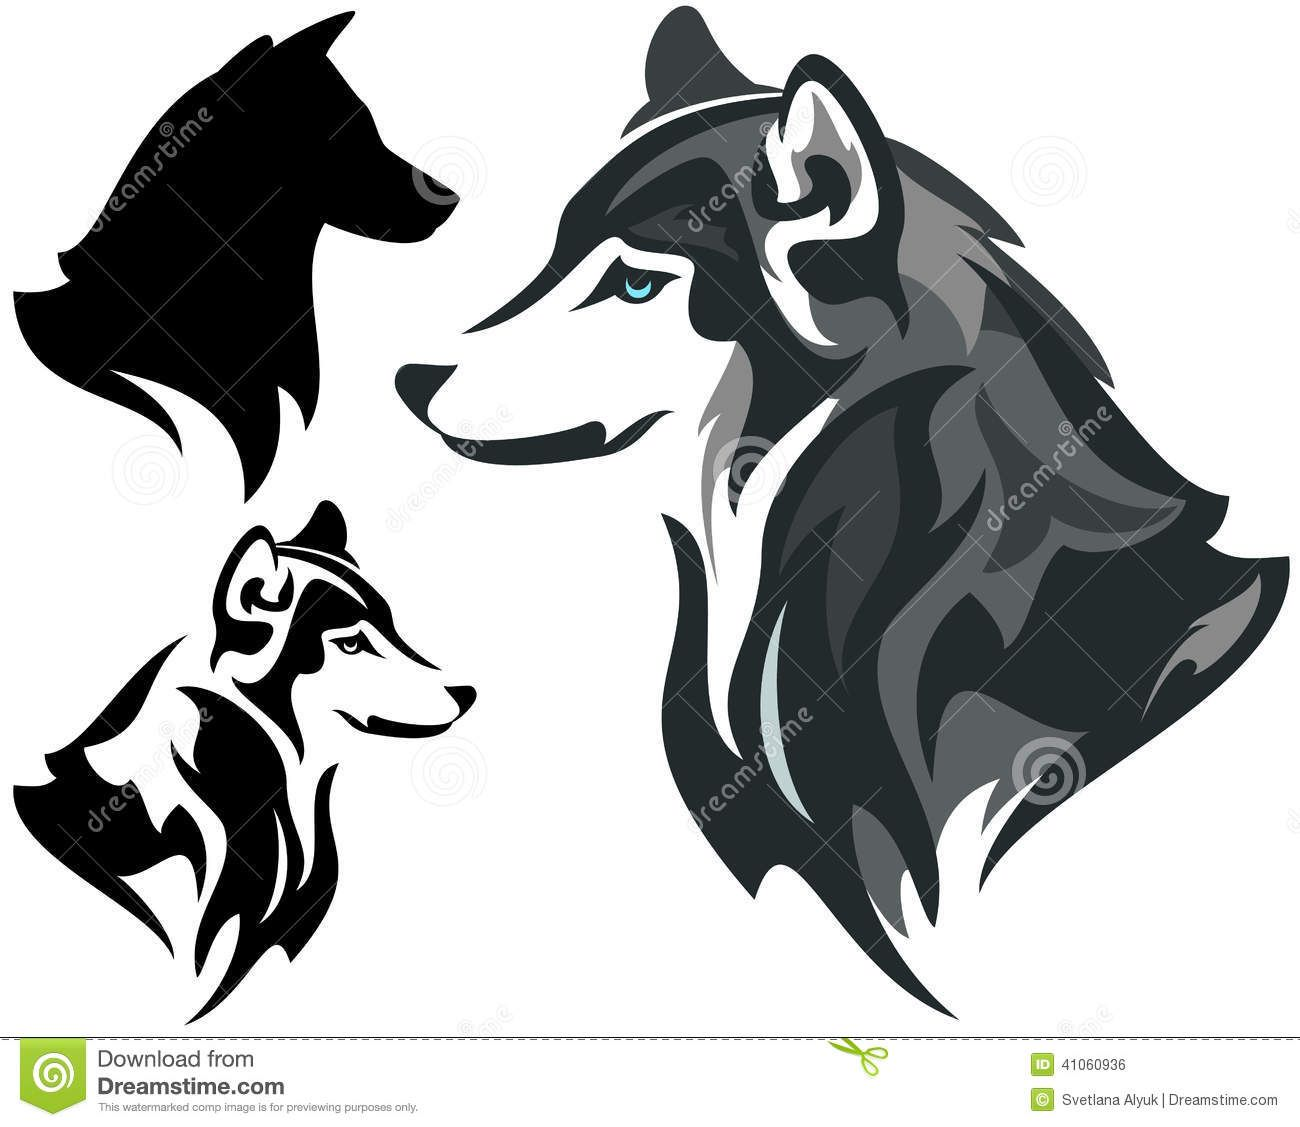 Husky Stock Illustrations, Vectors, & Clipart.